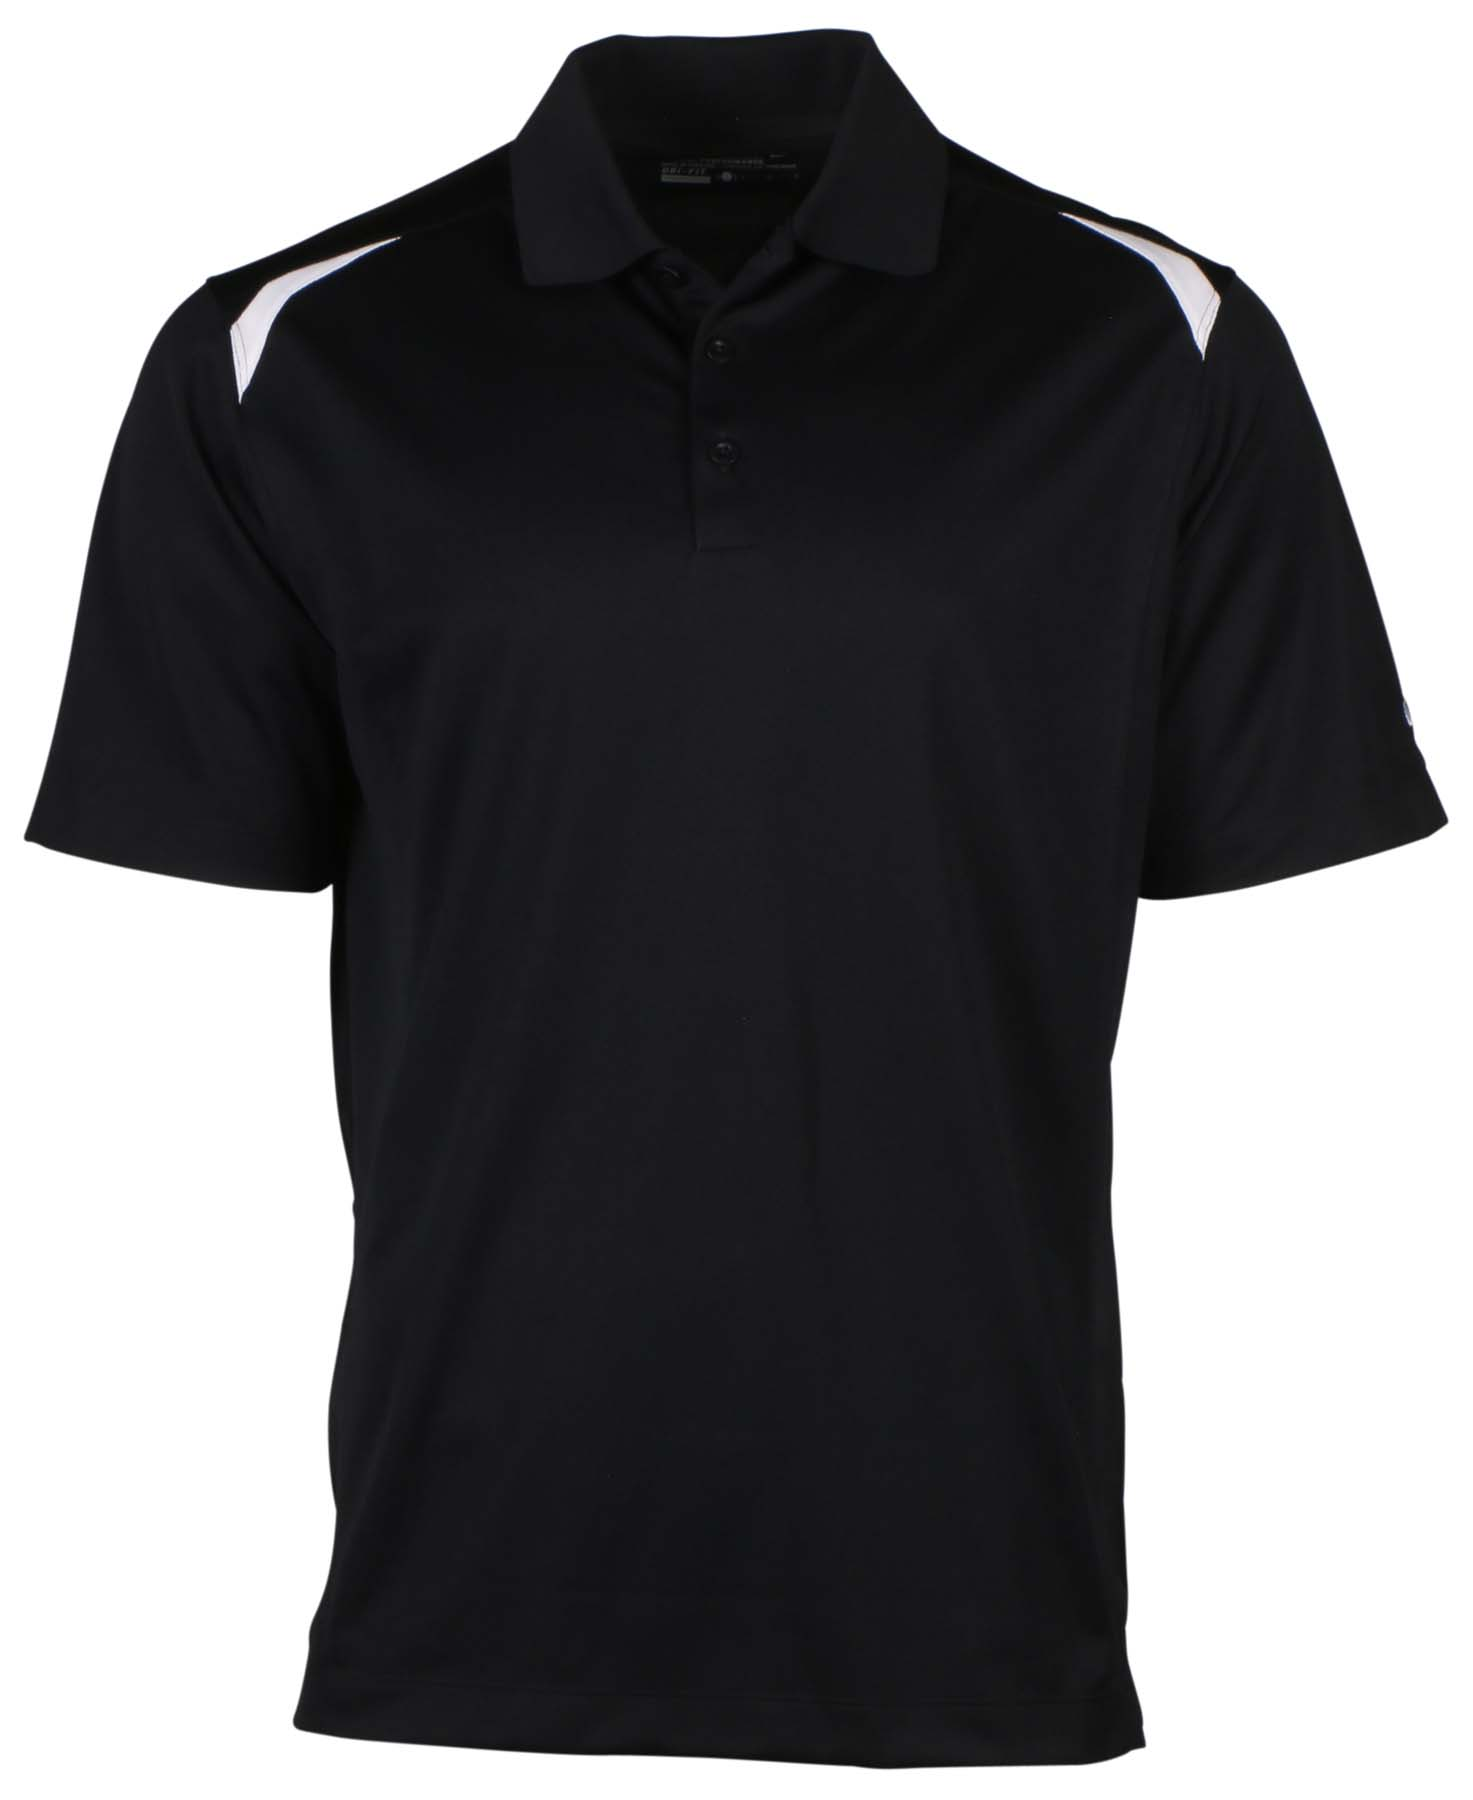 Nike Men's Dri-Fit Tour Performance Golf Polo Shirt | eBay